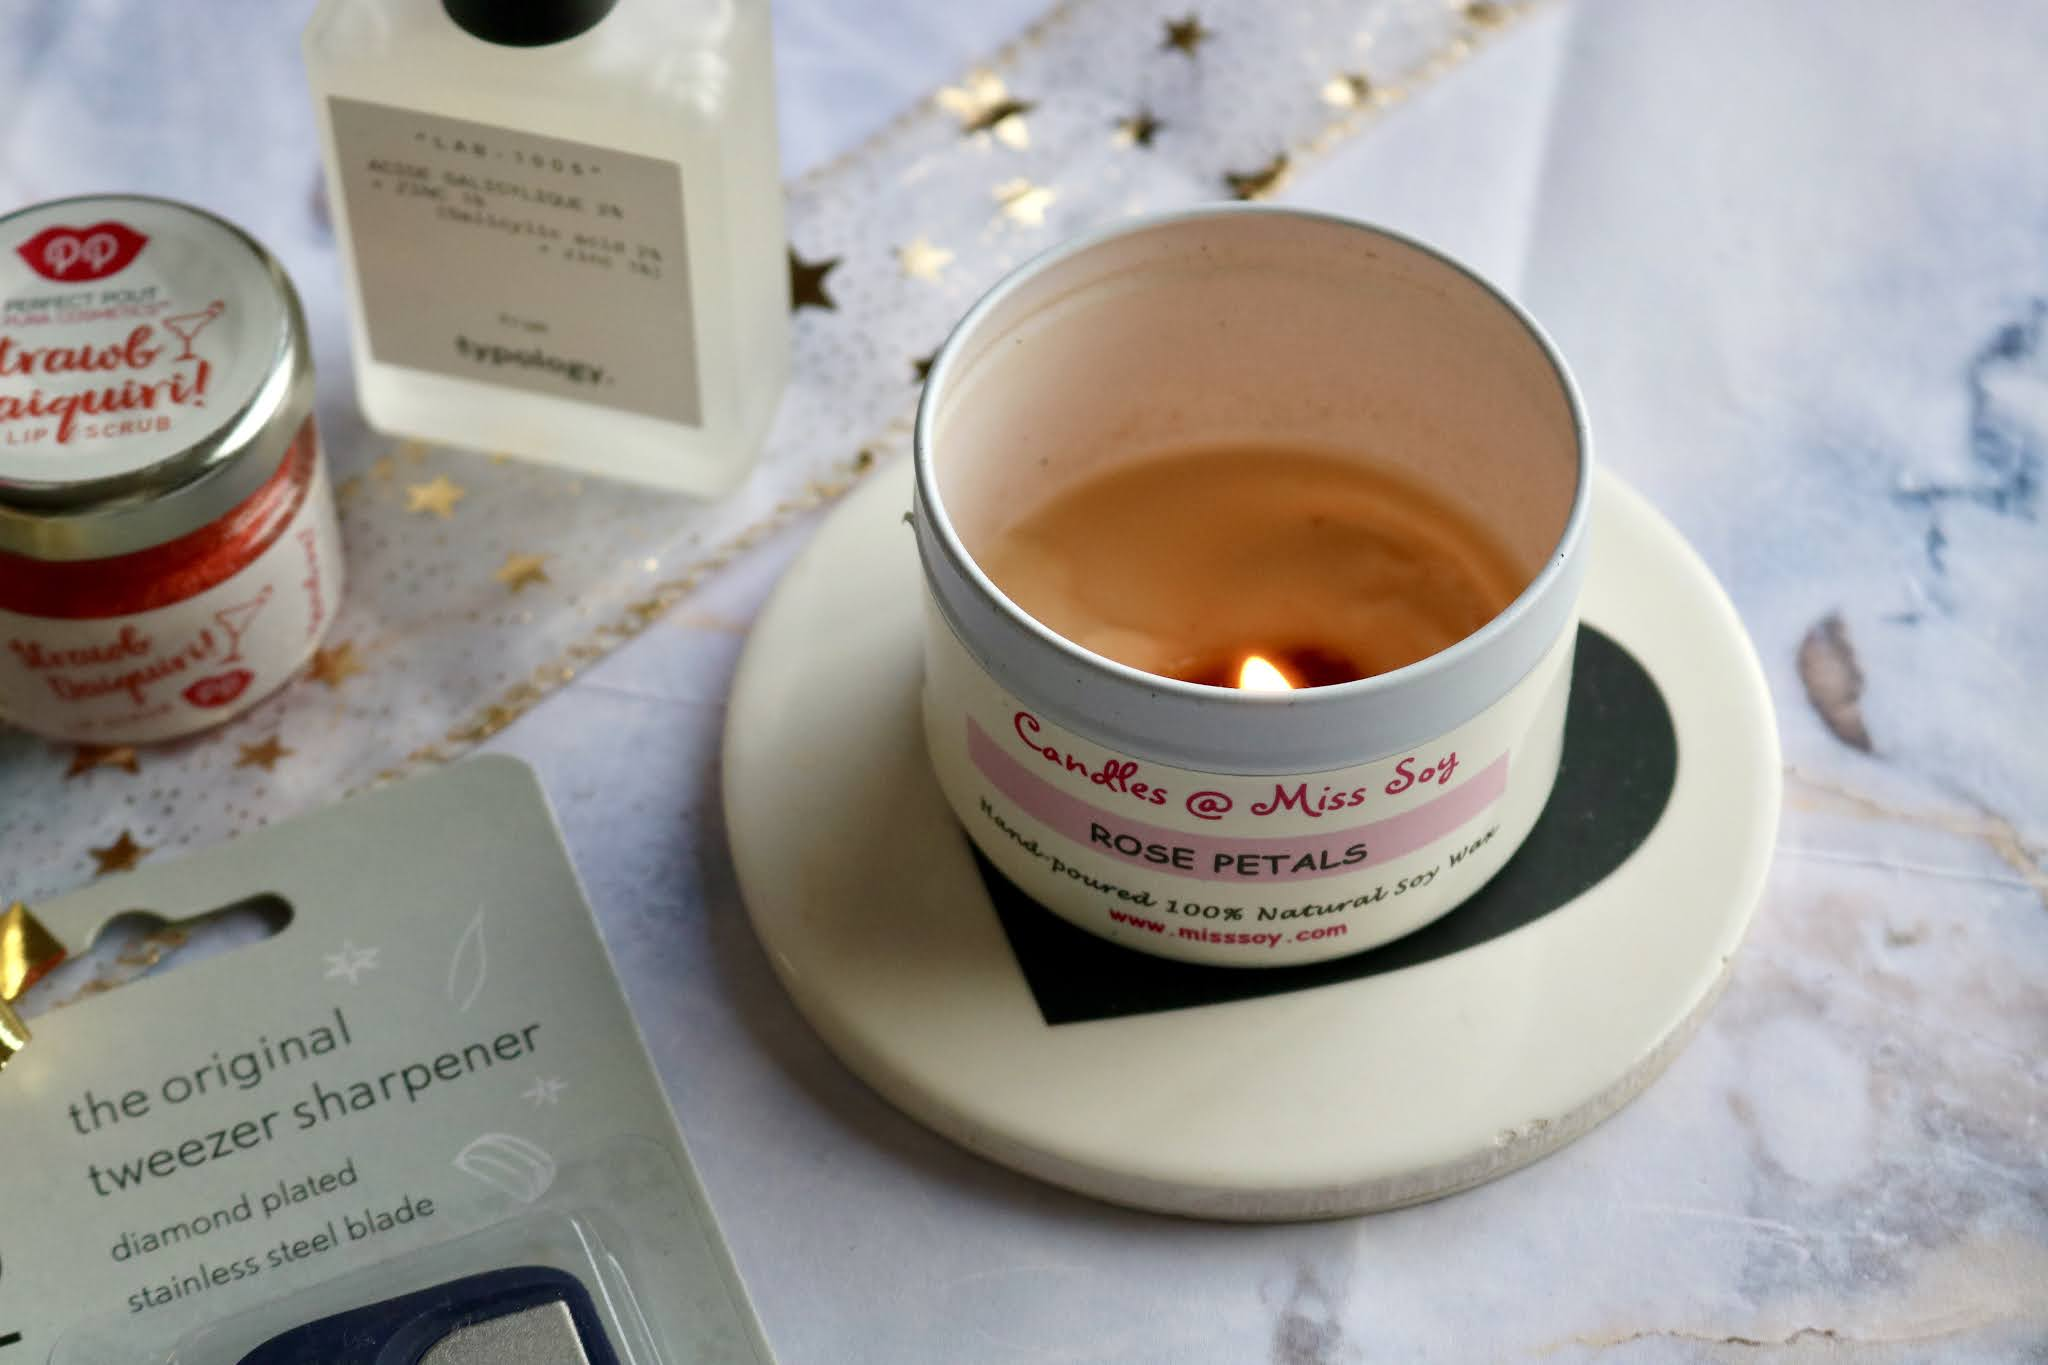 Miss Soy Rose Petal Candle in a tin